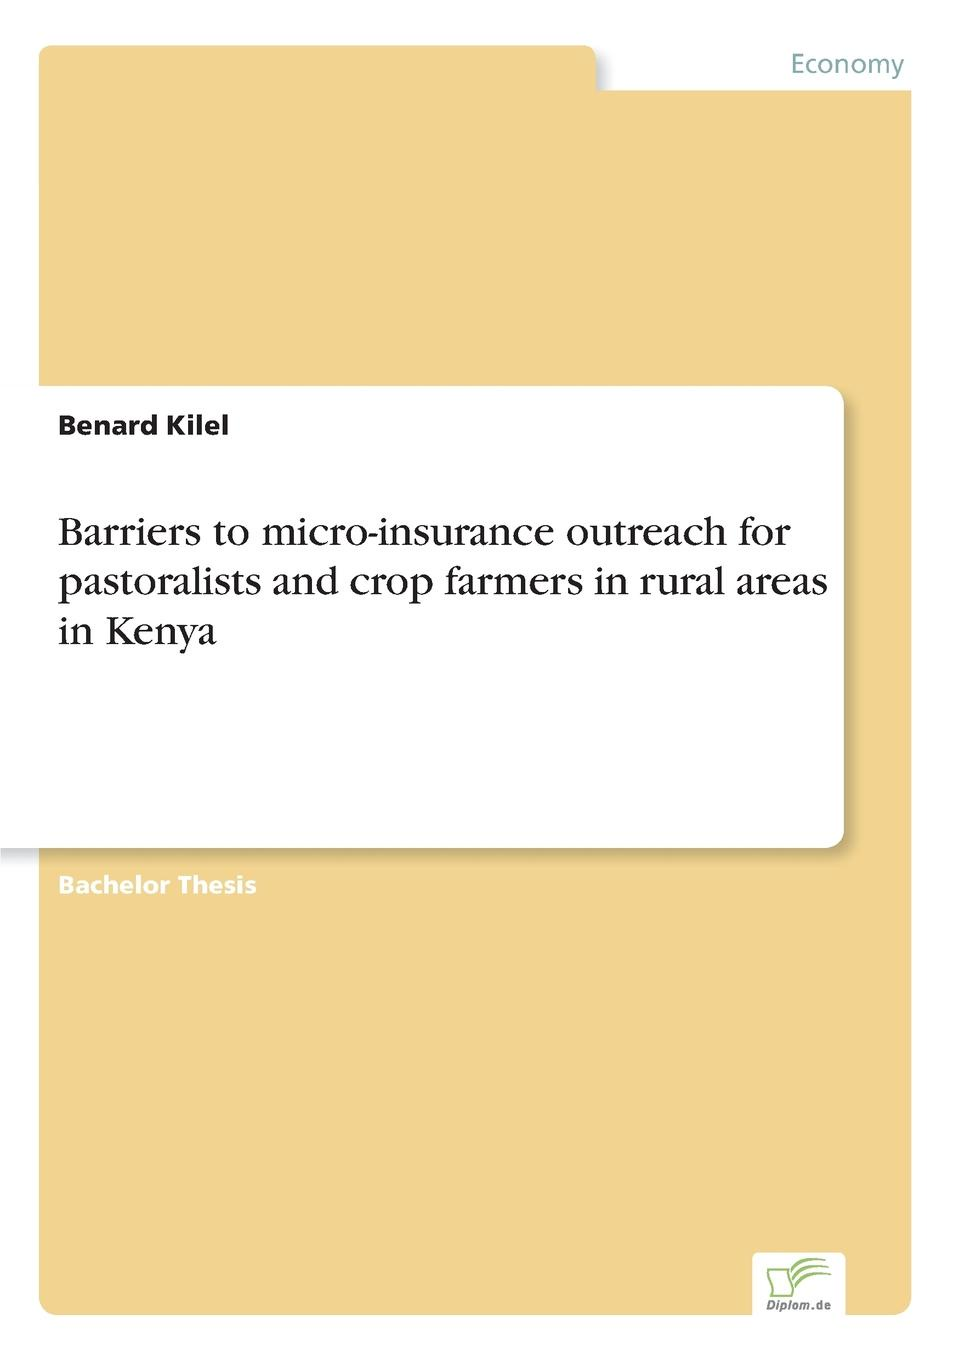 Benard Kilel Barriers to micro-insurance outreach for pastoralists and crop farmers in rural areas in Kenya micro perspectives on poverty alleviation in kenya